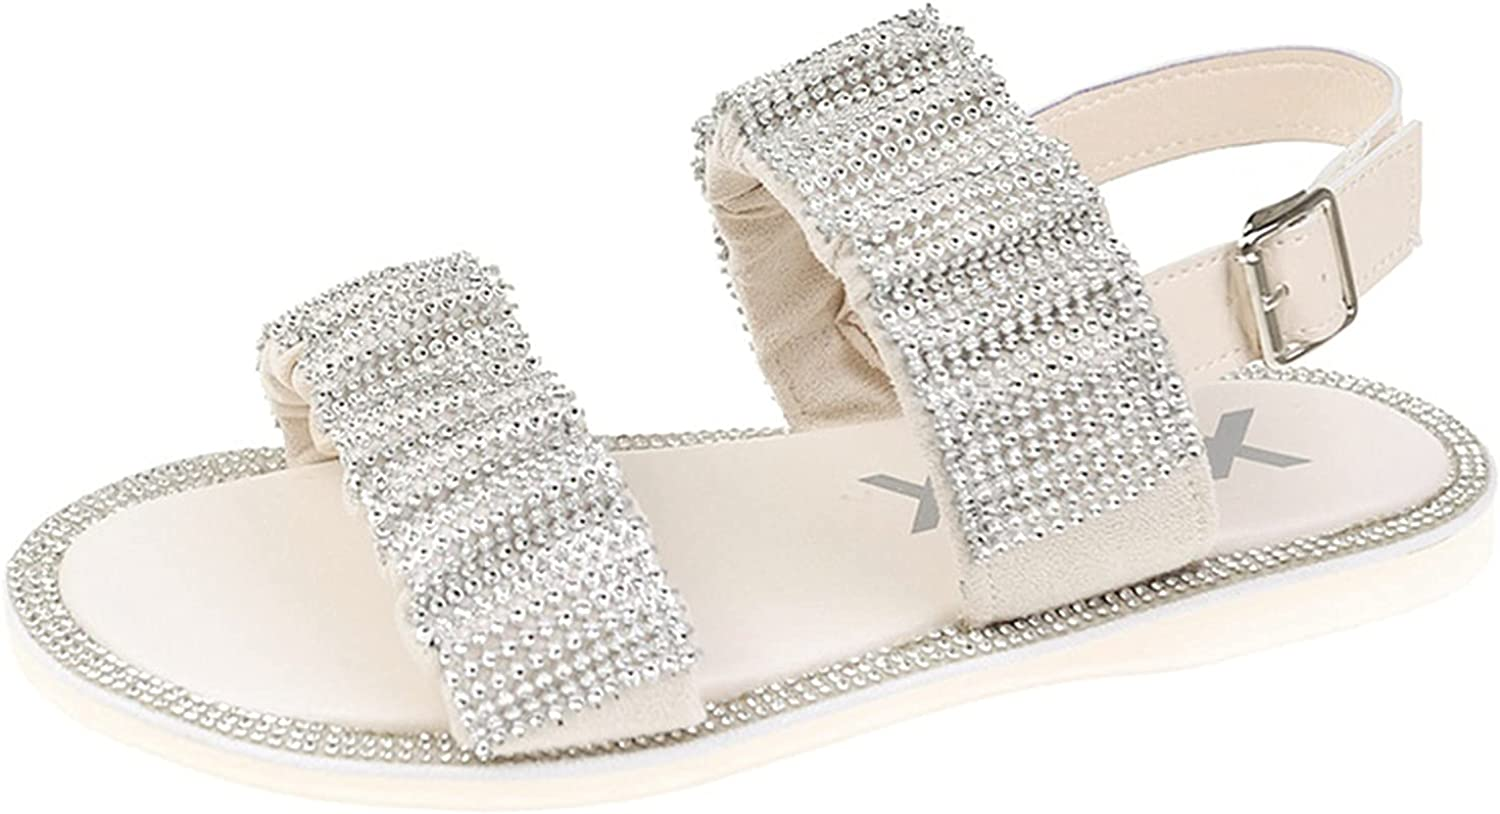 NLLSHGJ Comfortable Sandals Women Muffin Max 85% OFF Bottom Thick Hollow Max 58% OFF Bre